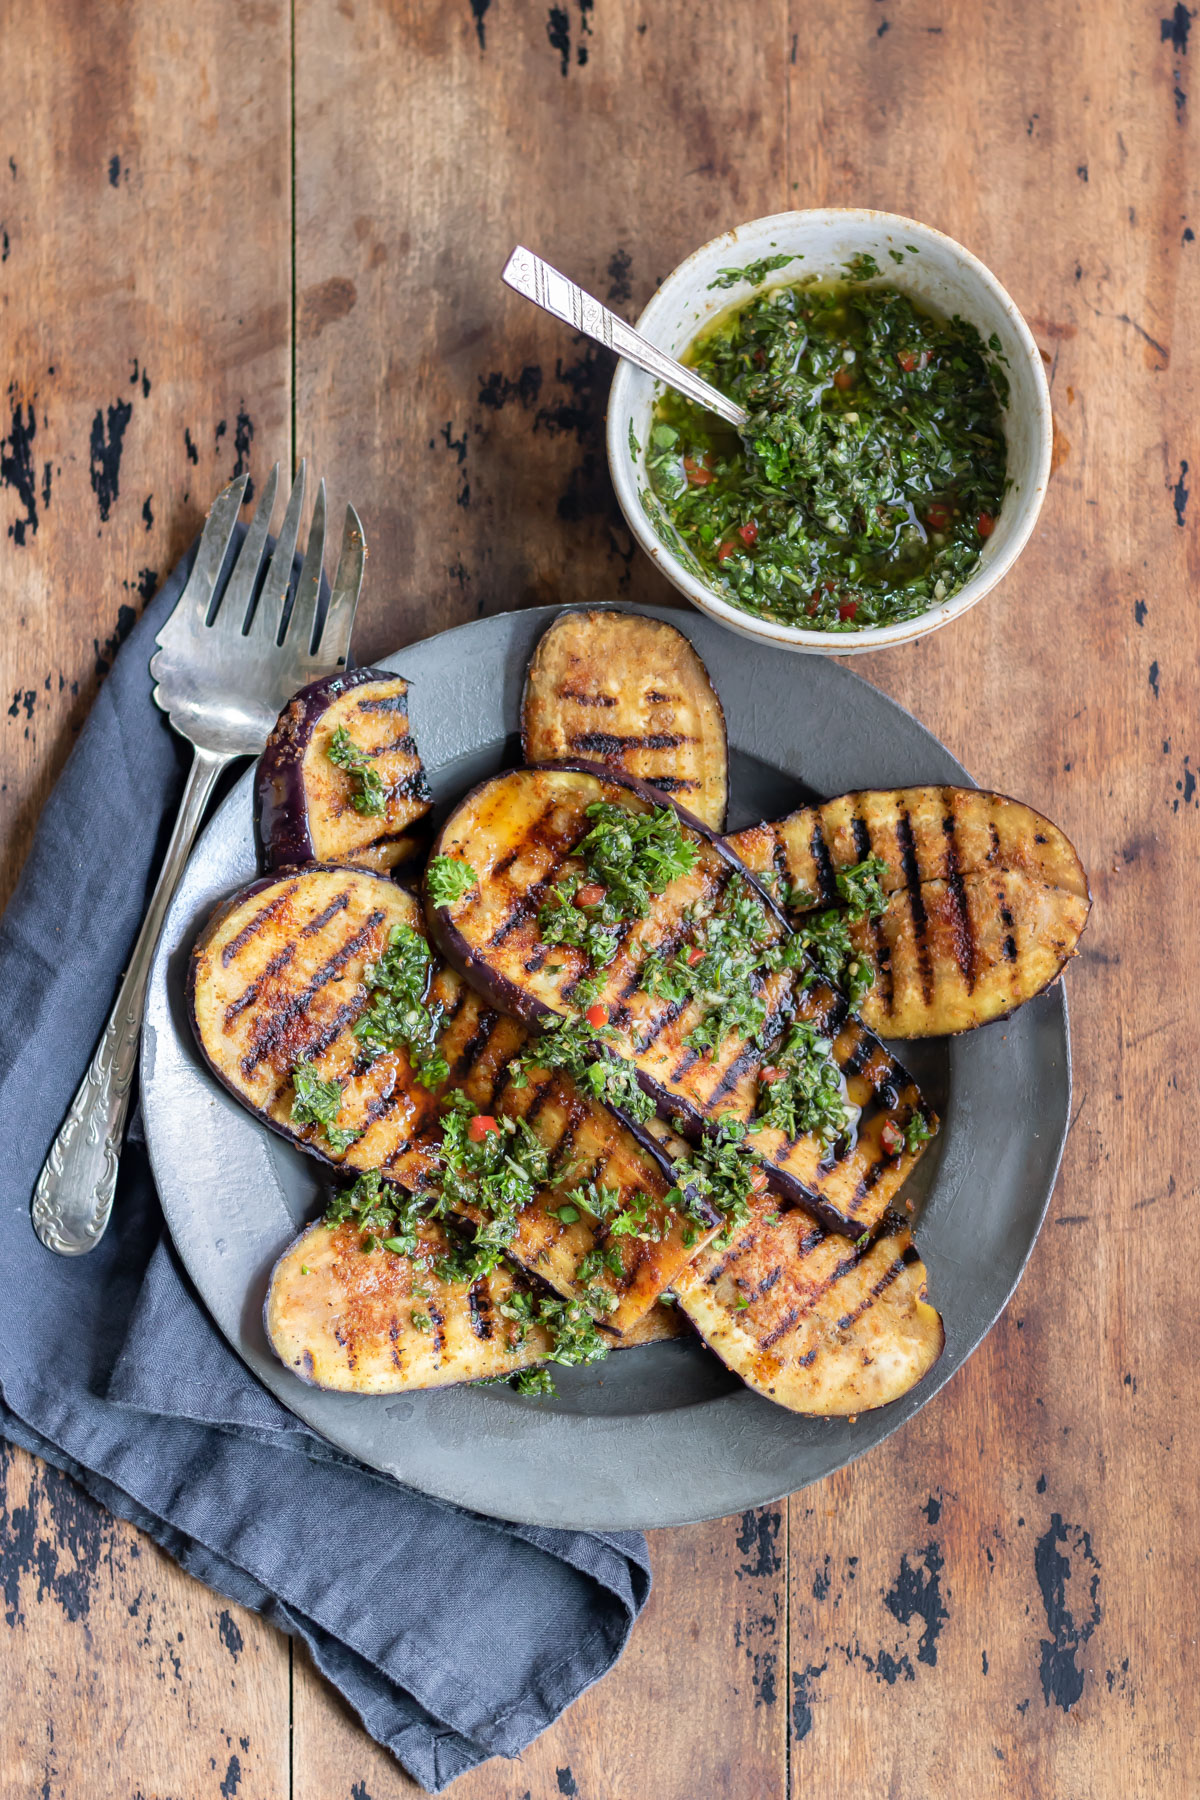 Wooden table with a plate of grilled eggplant steaks.